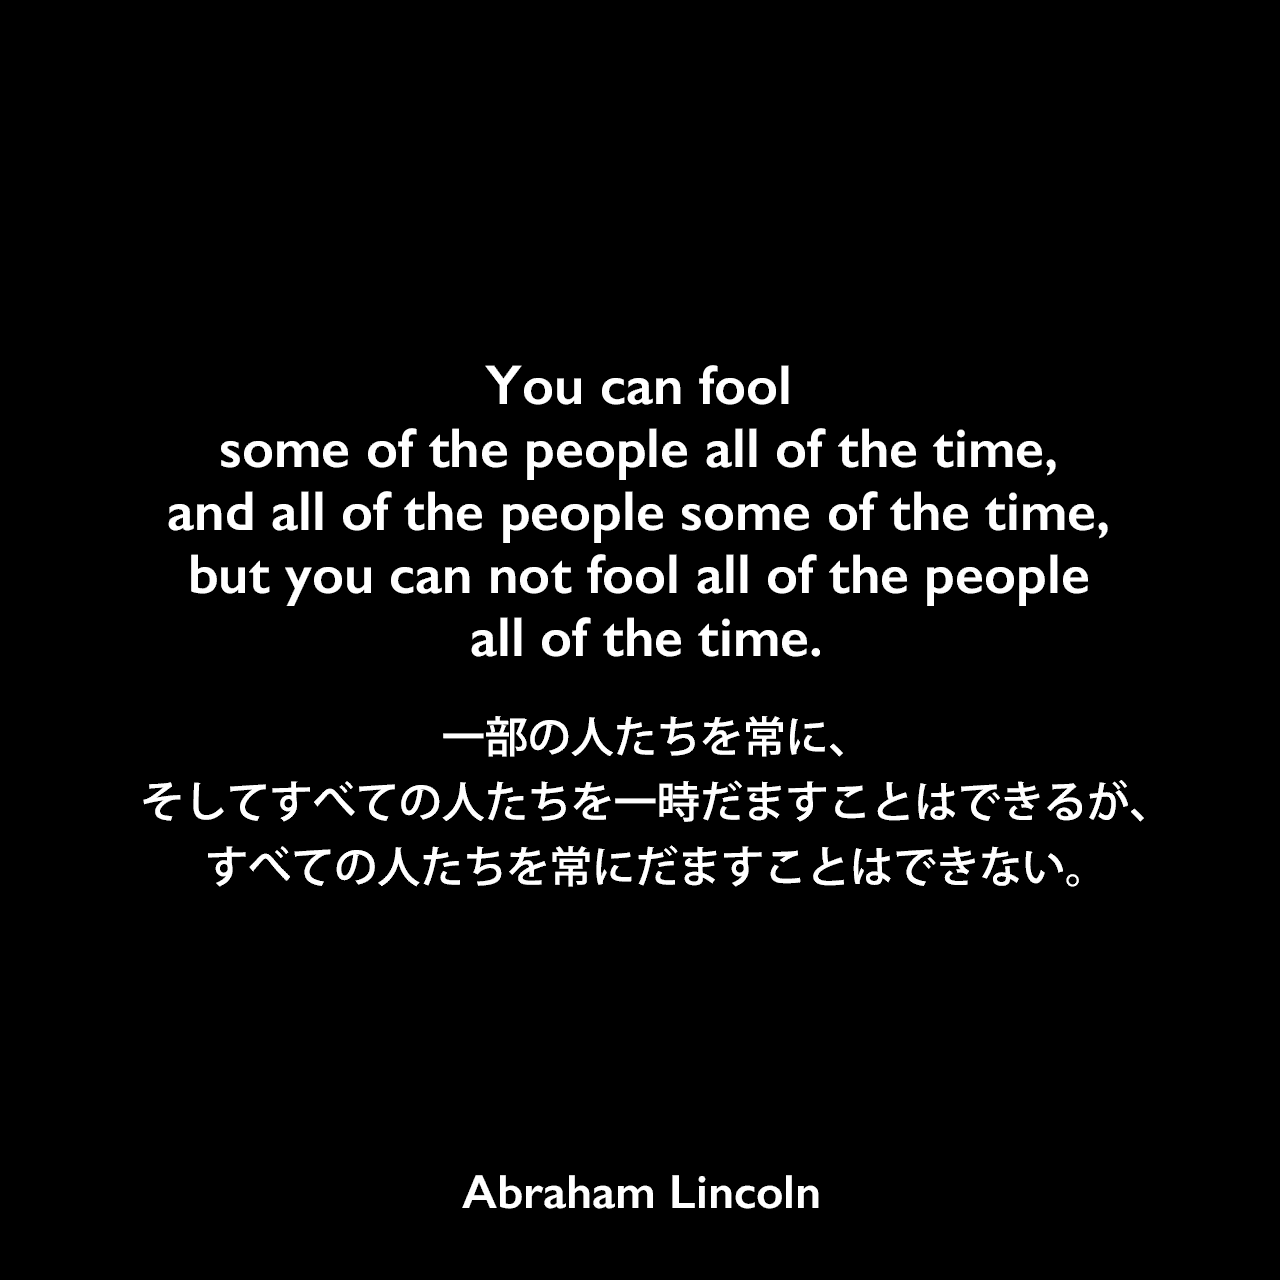 You can fool some of the people all of the time, and all of the people some of the time, but you can not fool all of the people all of the time.一部の人たちを常に、そしてすべての人たちを一時だますことはできるが、すべての人たちを常にだますことはできない。Abraham Lincoln